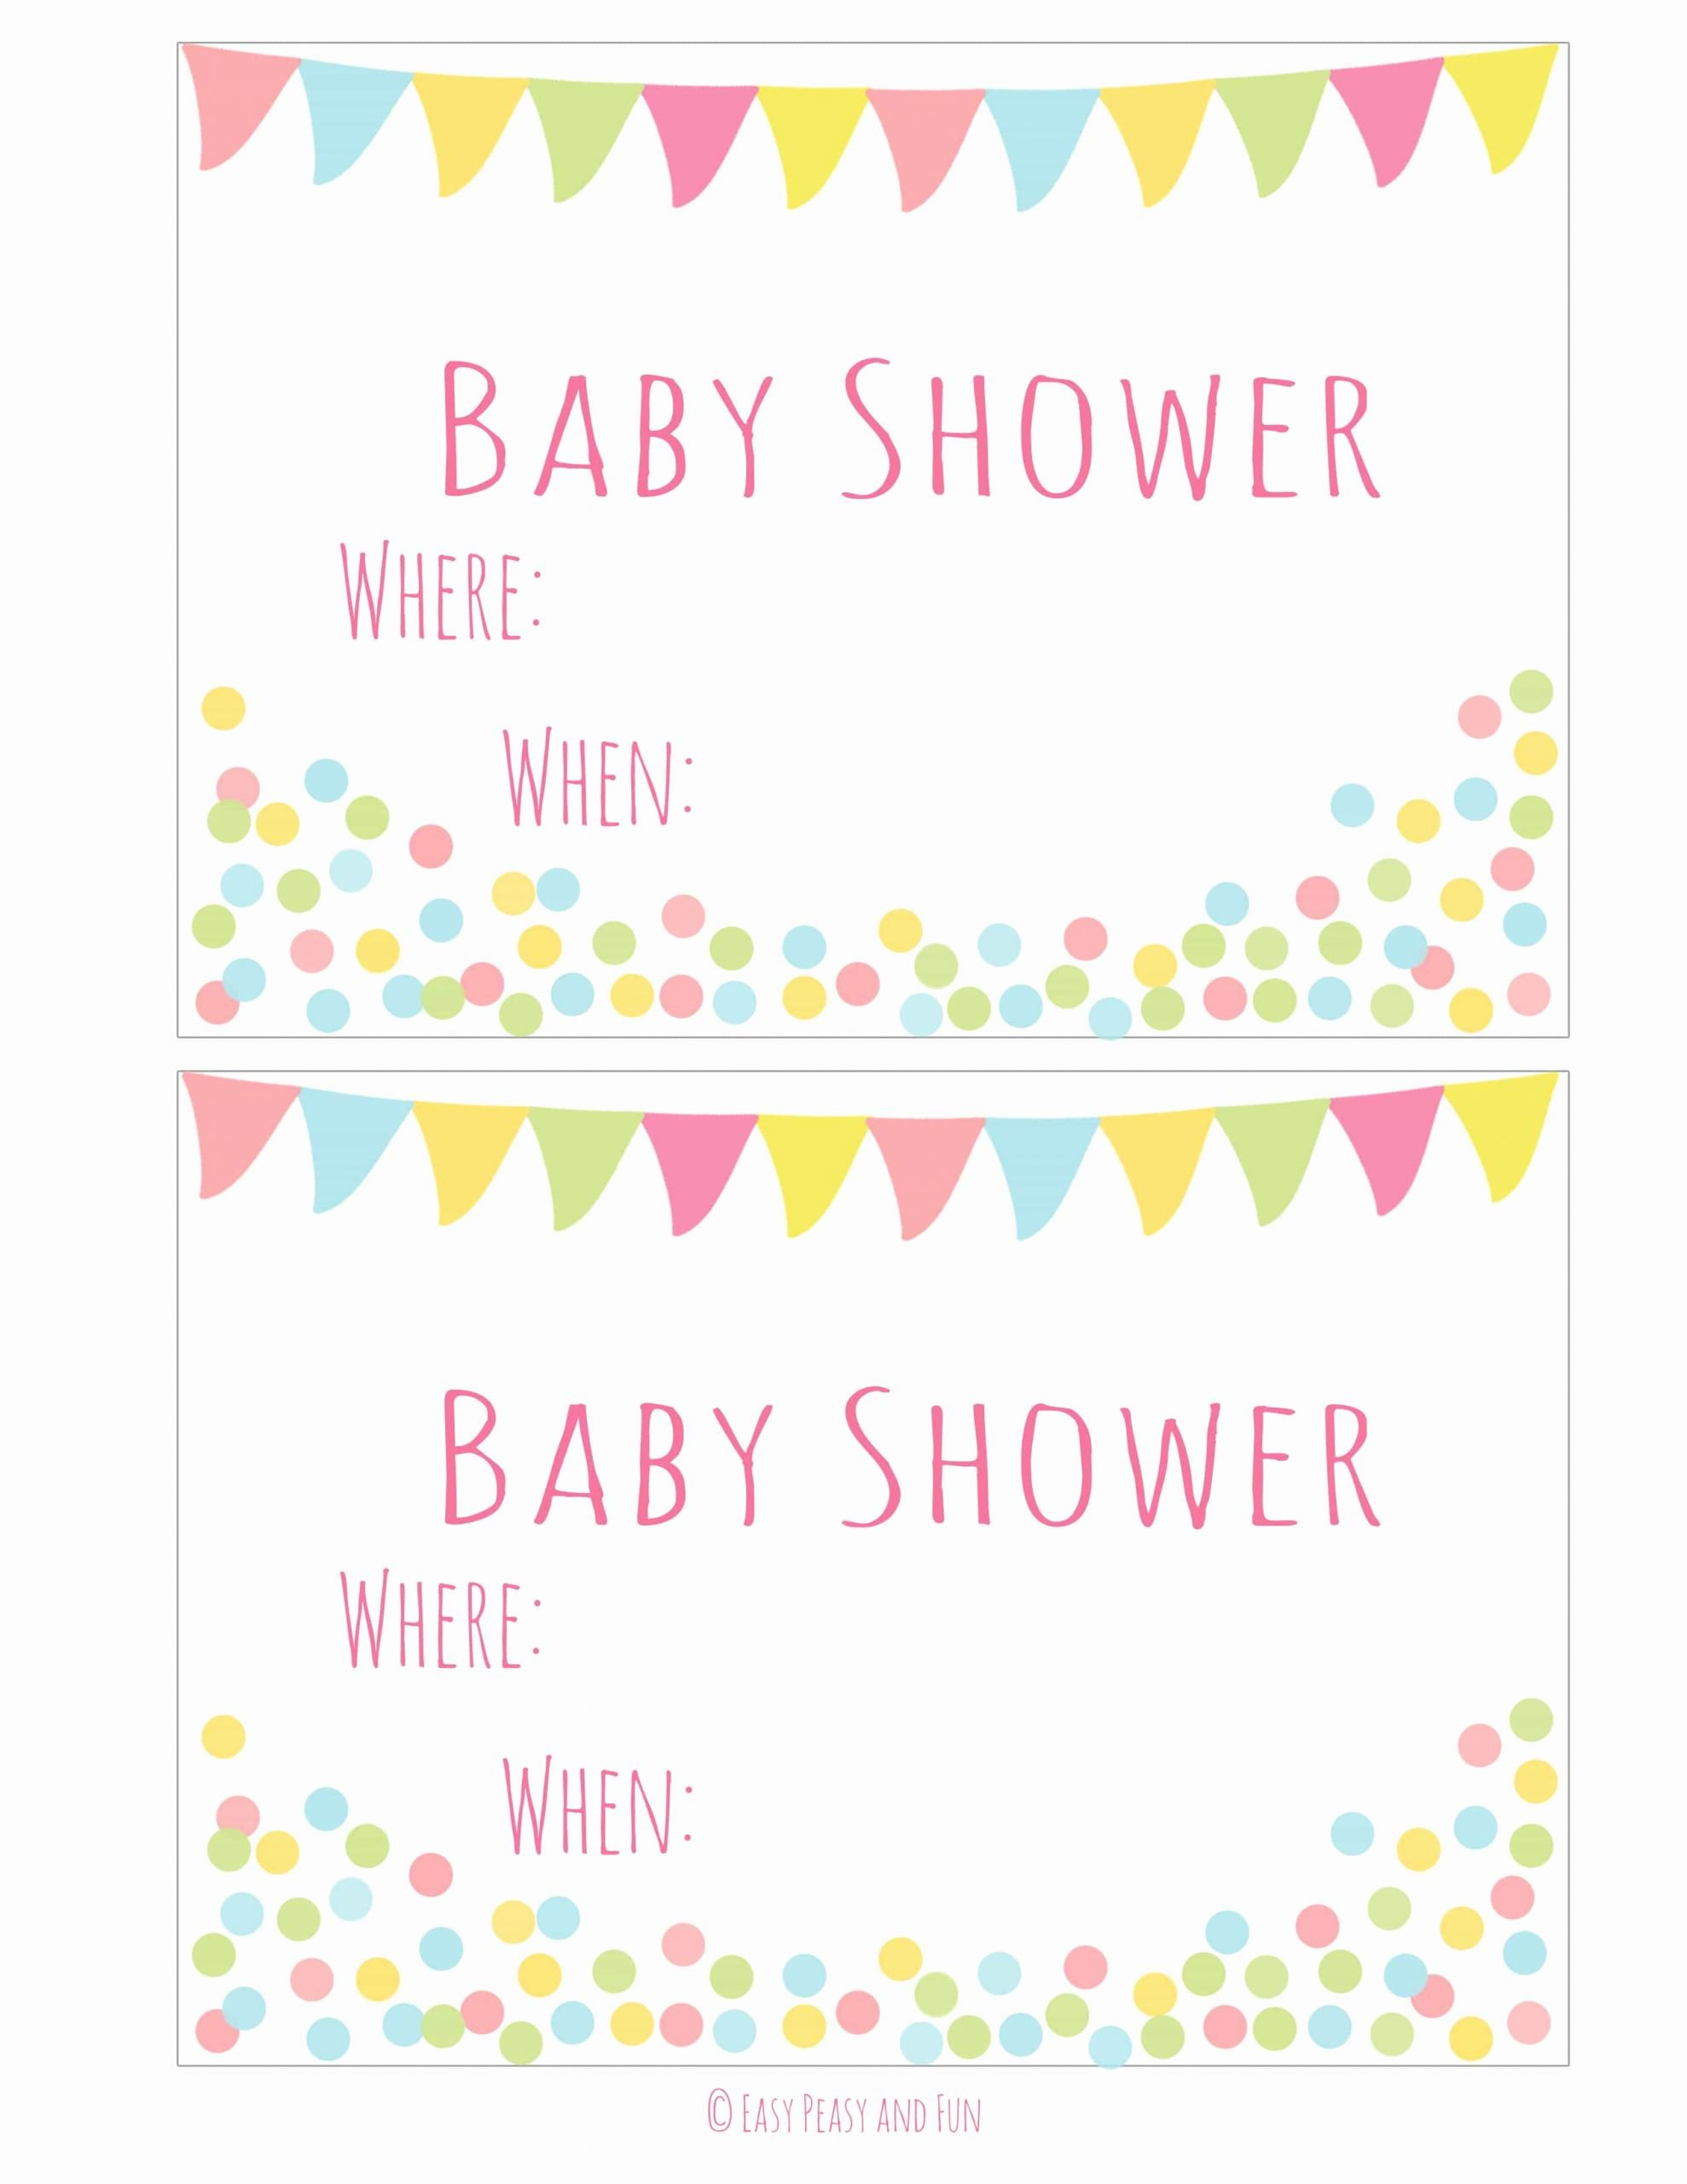 Free Baby Invitation Template Beautiful Free Printable Baby Shower Invitation Easy Peasy and Fun